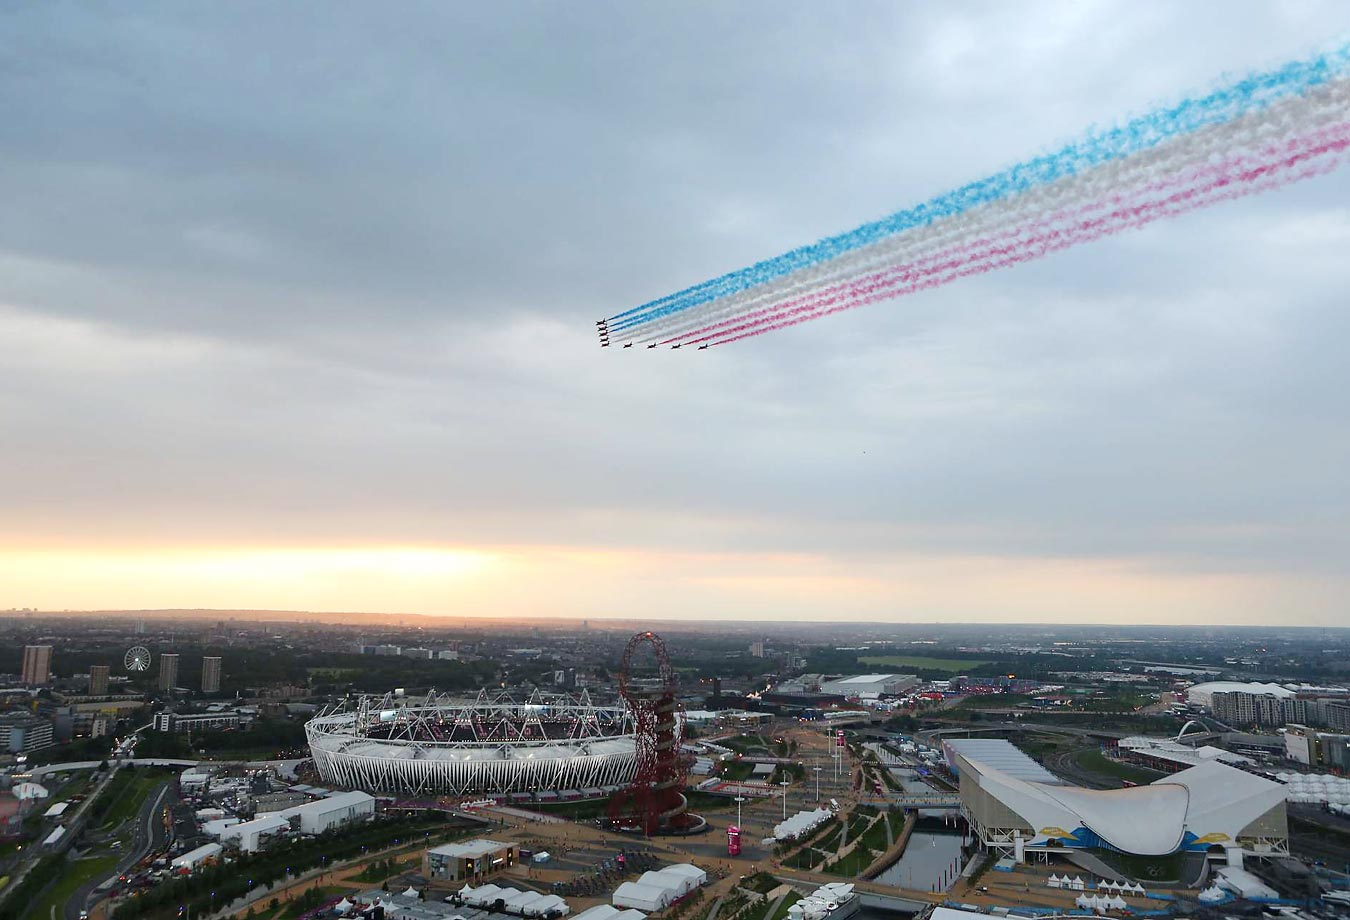 The Royal Air Force aerobatic team, the Red Arrows, performs a flyover at the Olympic Stadium during the Opening Ceremony of the 2012 London Summer Games.